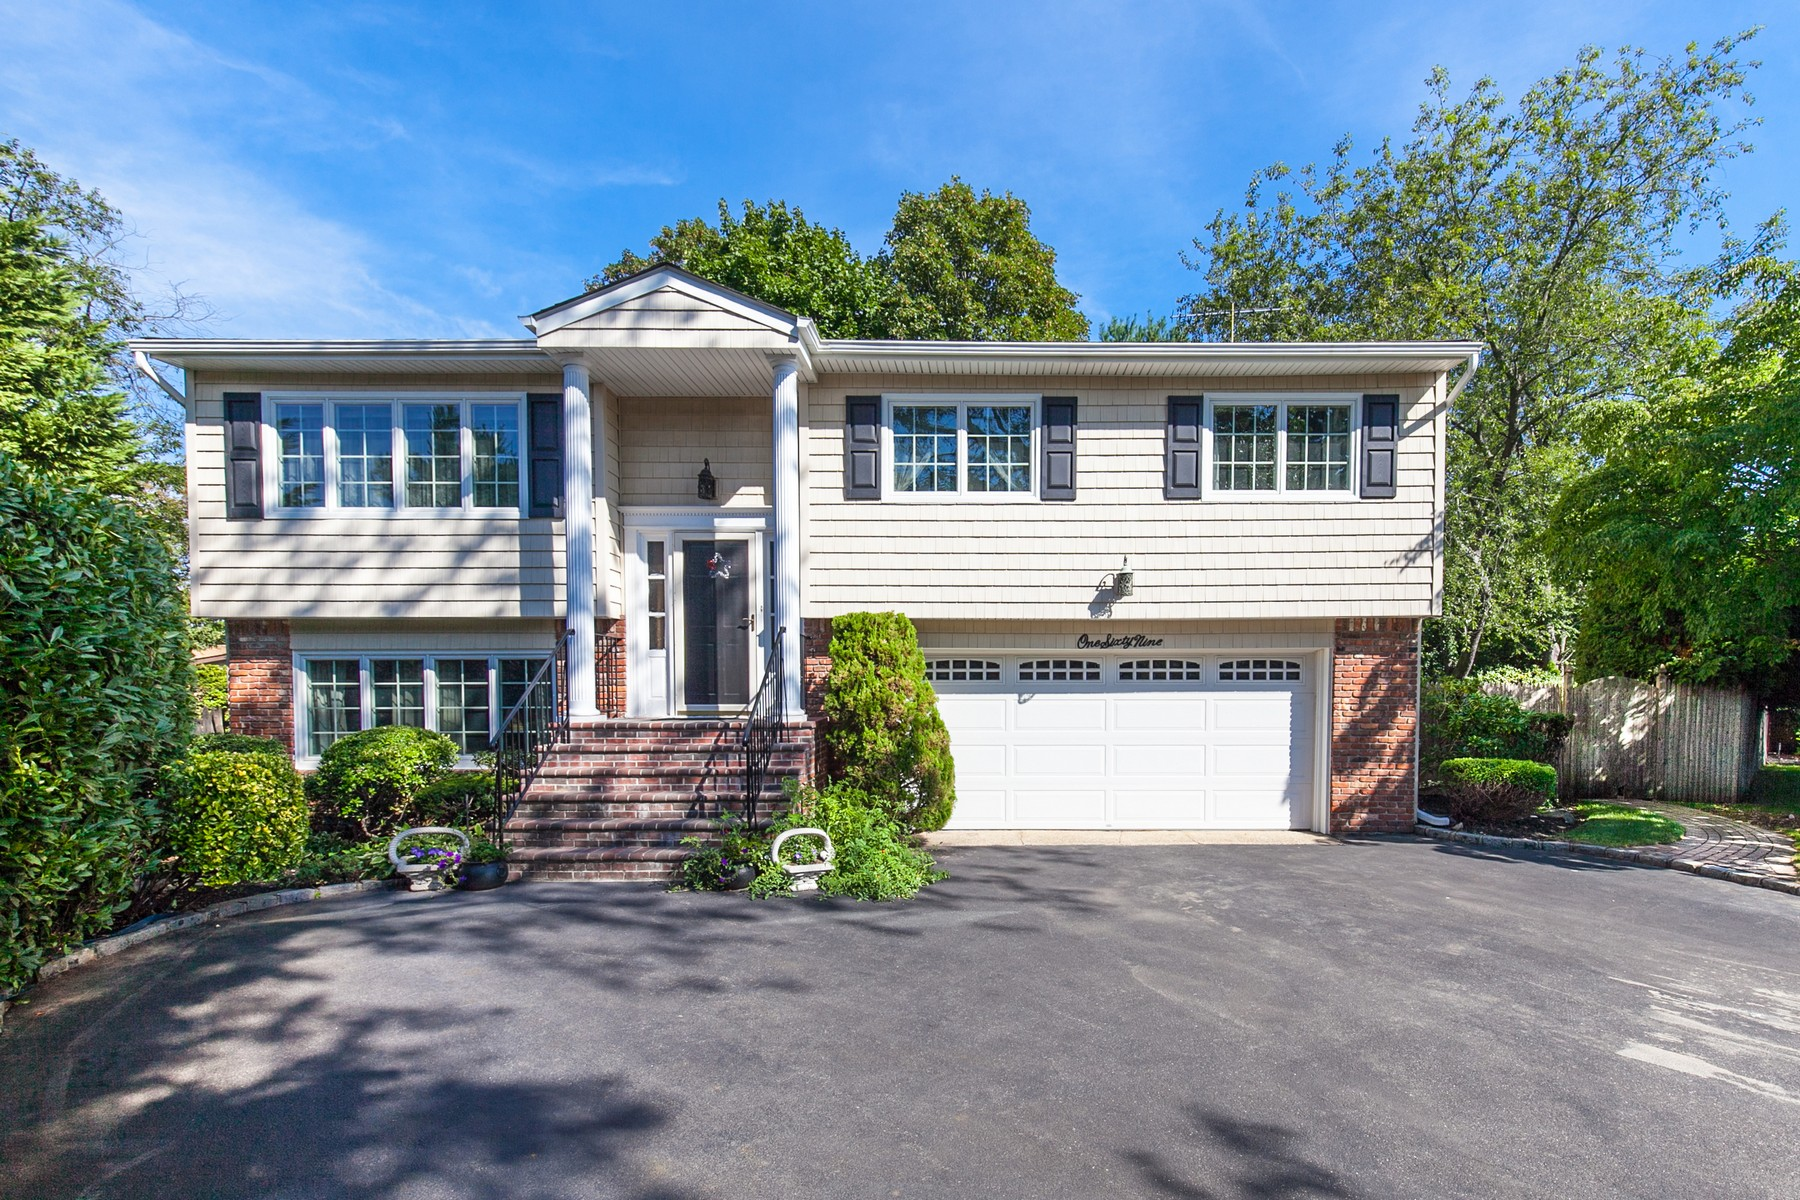 Single Family Home for Sale at Hi Ranch 169 Berry Hill Ct Syosset, New York, 11791 United States